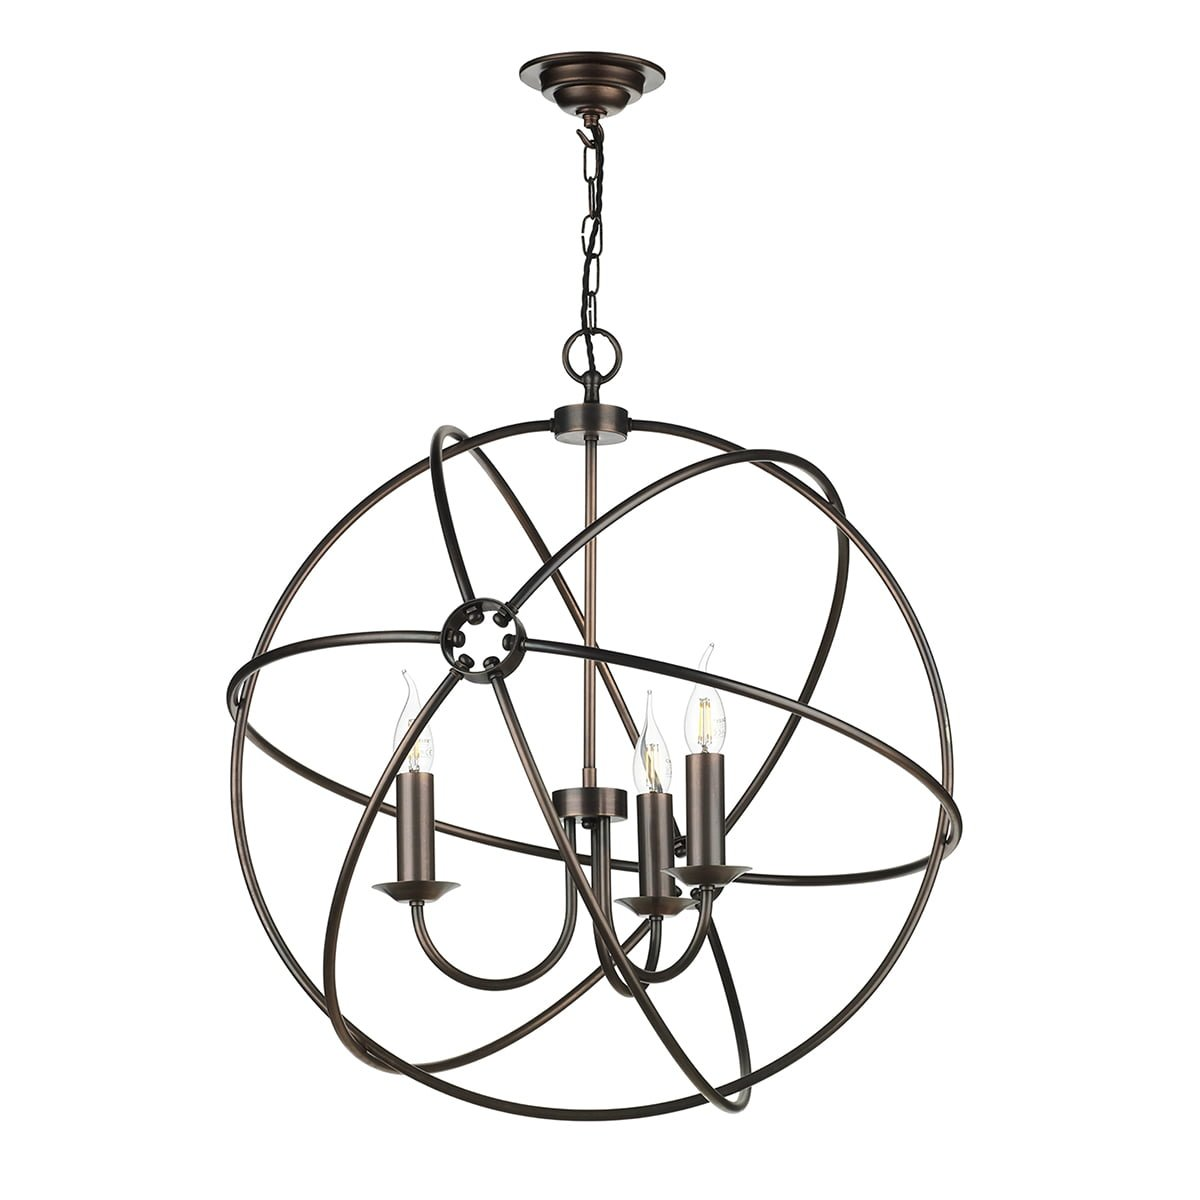 David Hunt Lighting ORB0364 Orb 3 Light Pendant in Antique Copper Finish